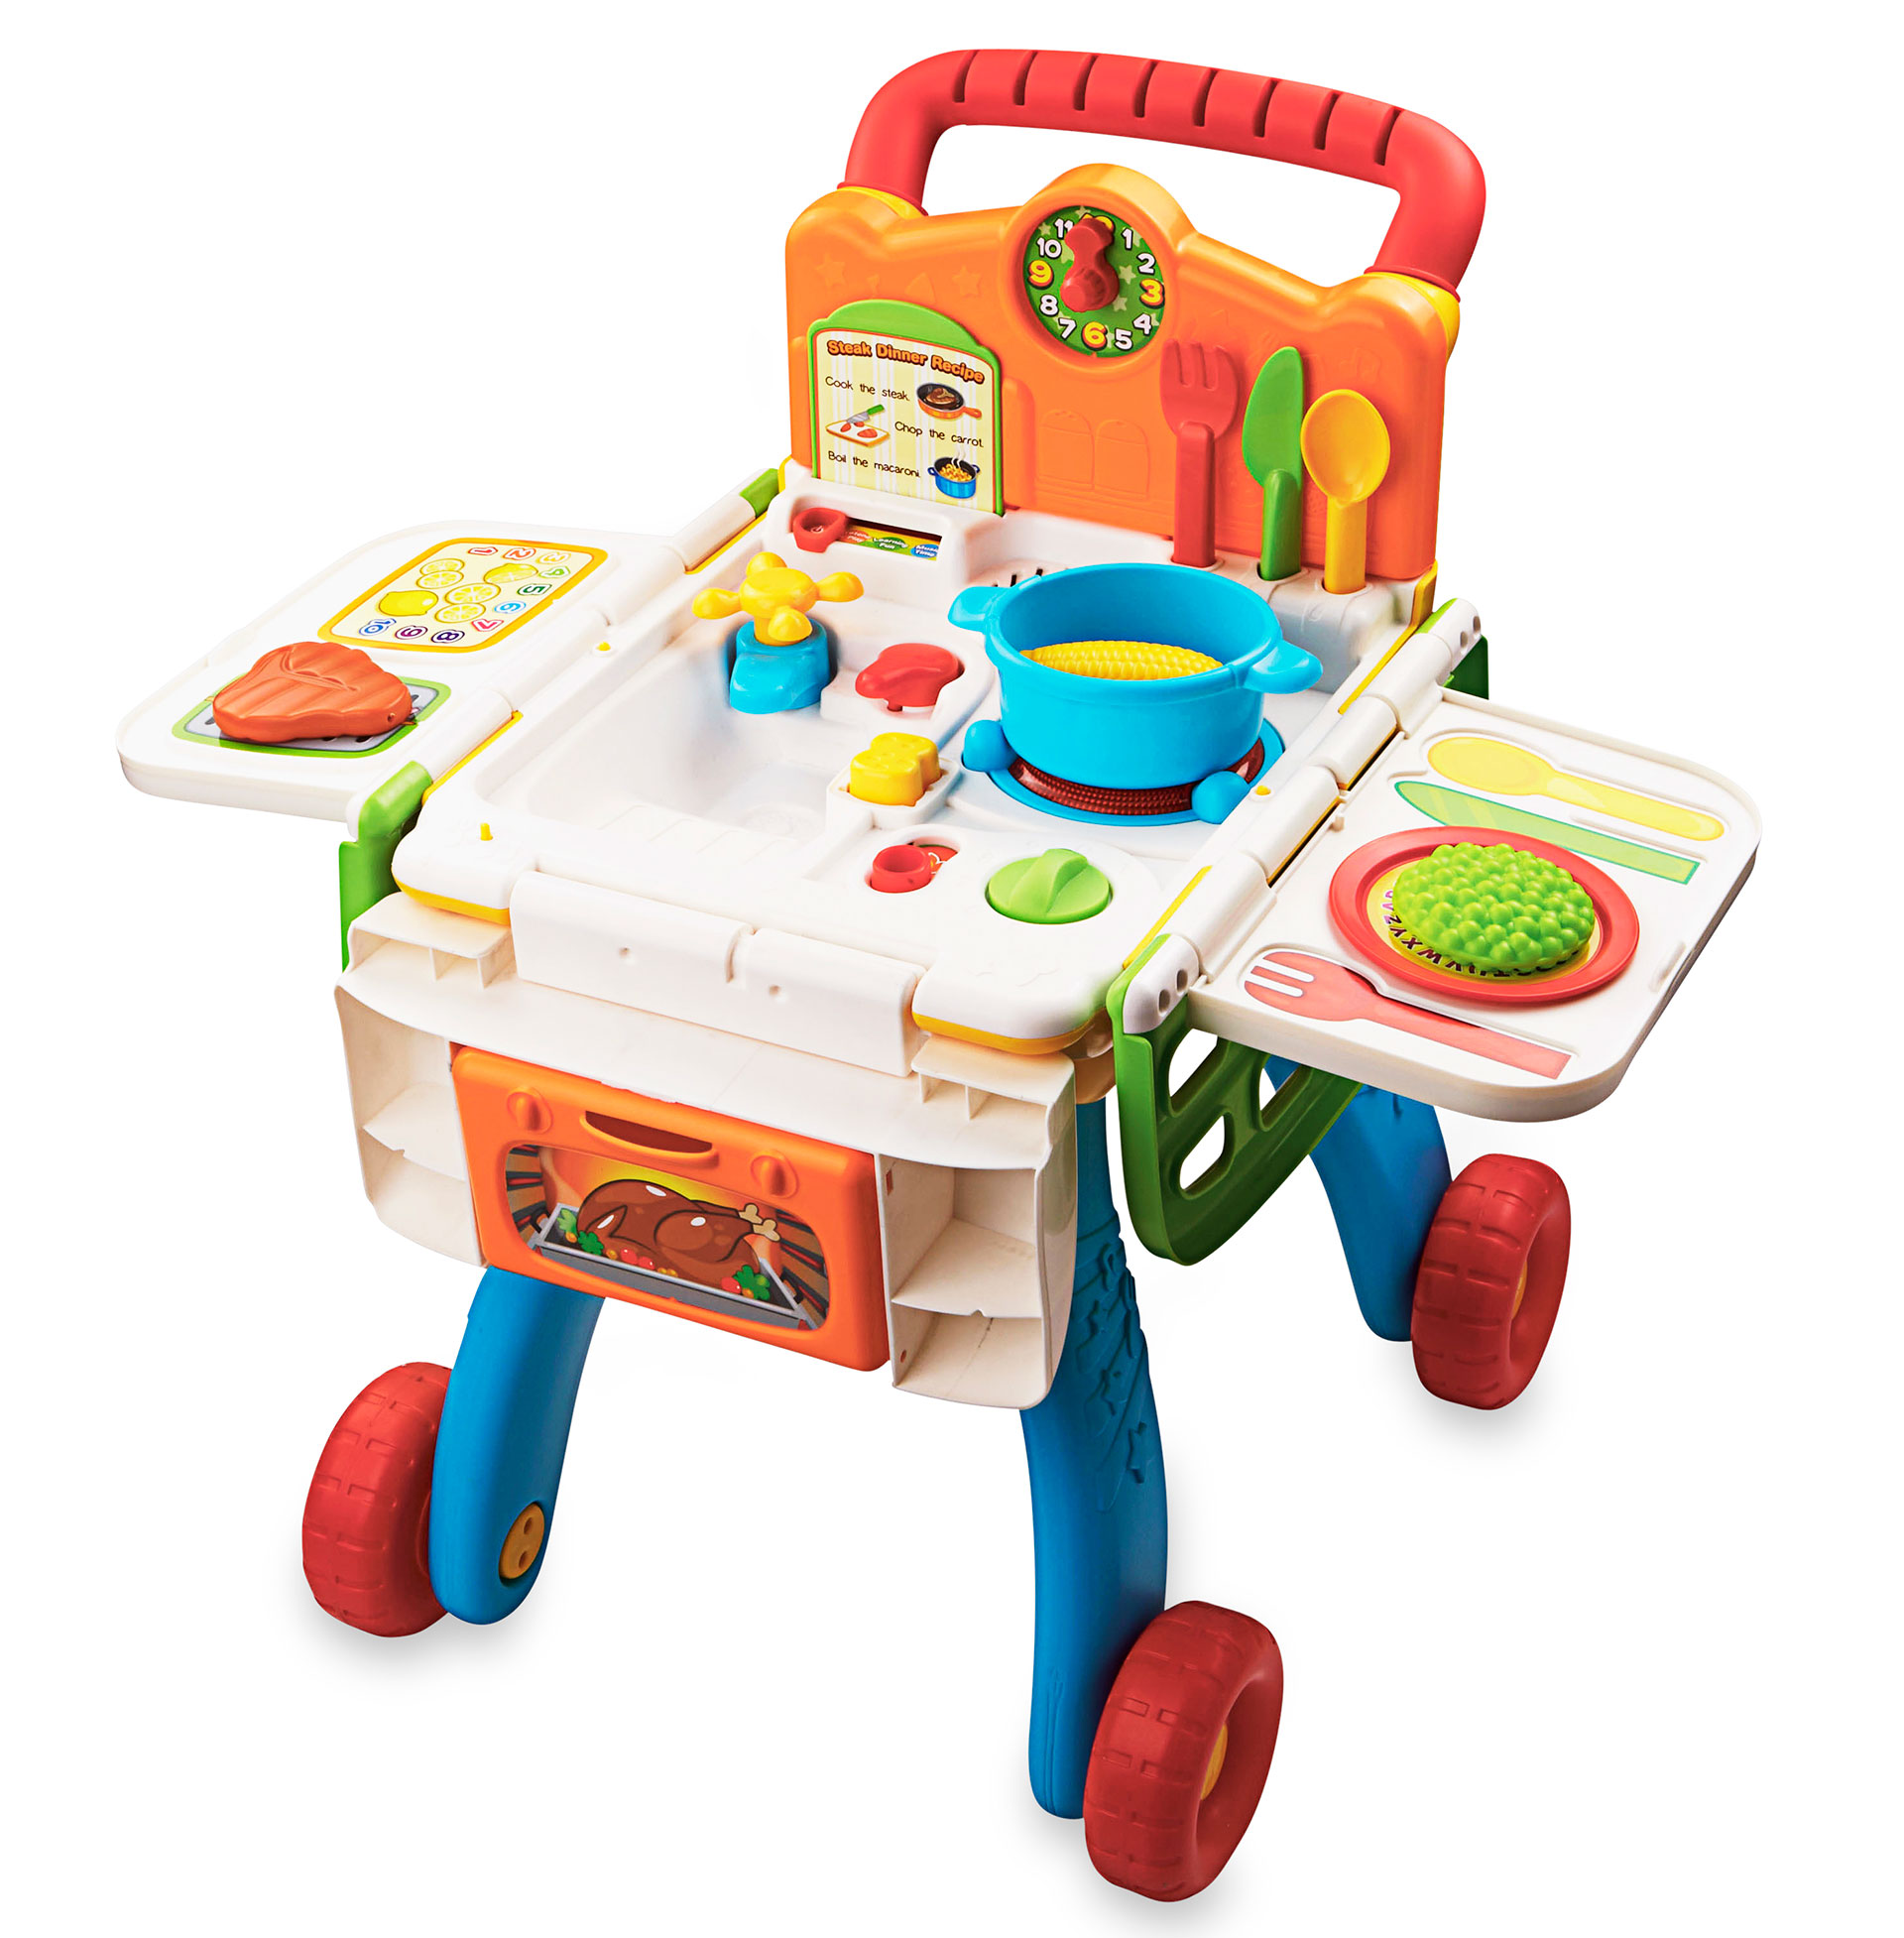 Good Housekeeping Best Toy Awards 2013 Toy Reviews